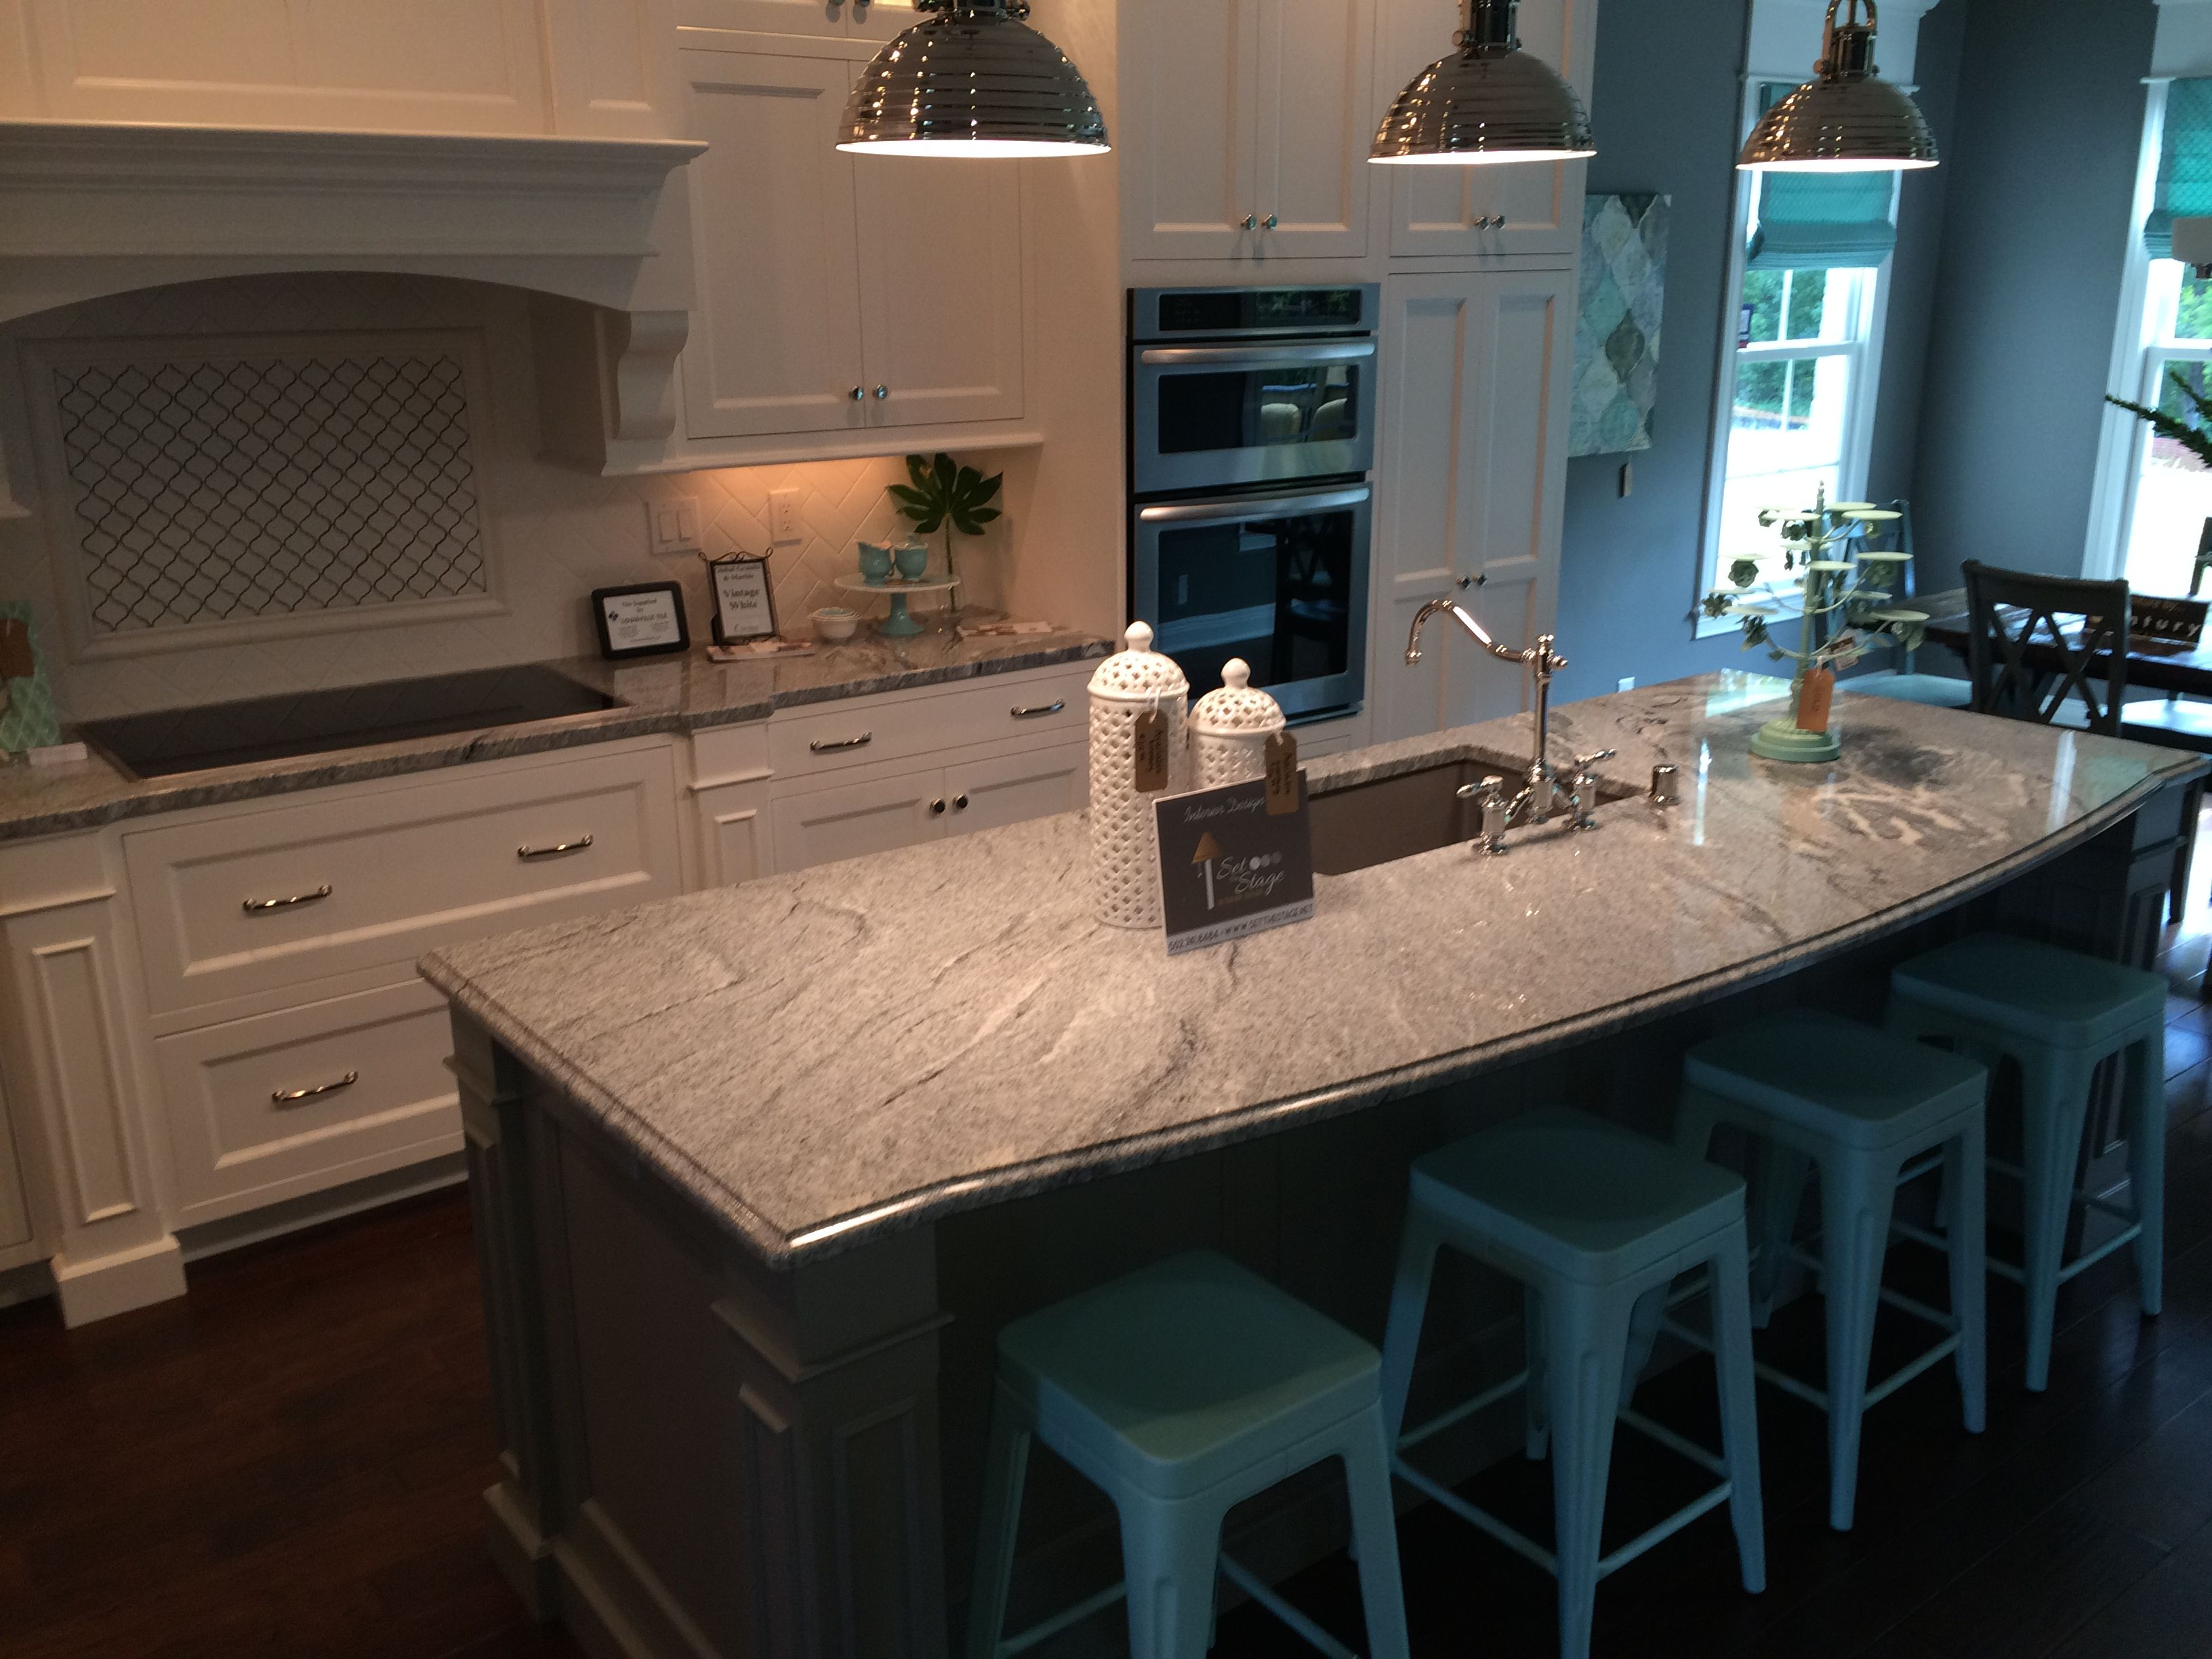 White Silver Granite Countertop : Vintage White/ Silver Cloud granite island with dark base and white ...